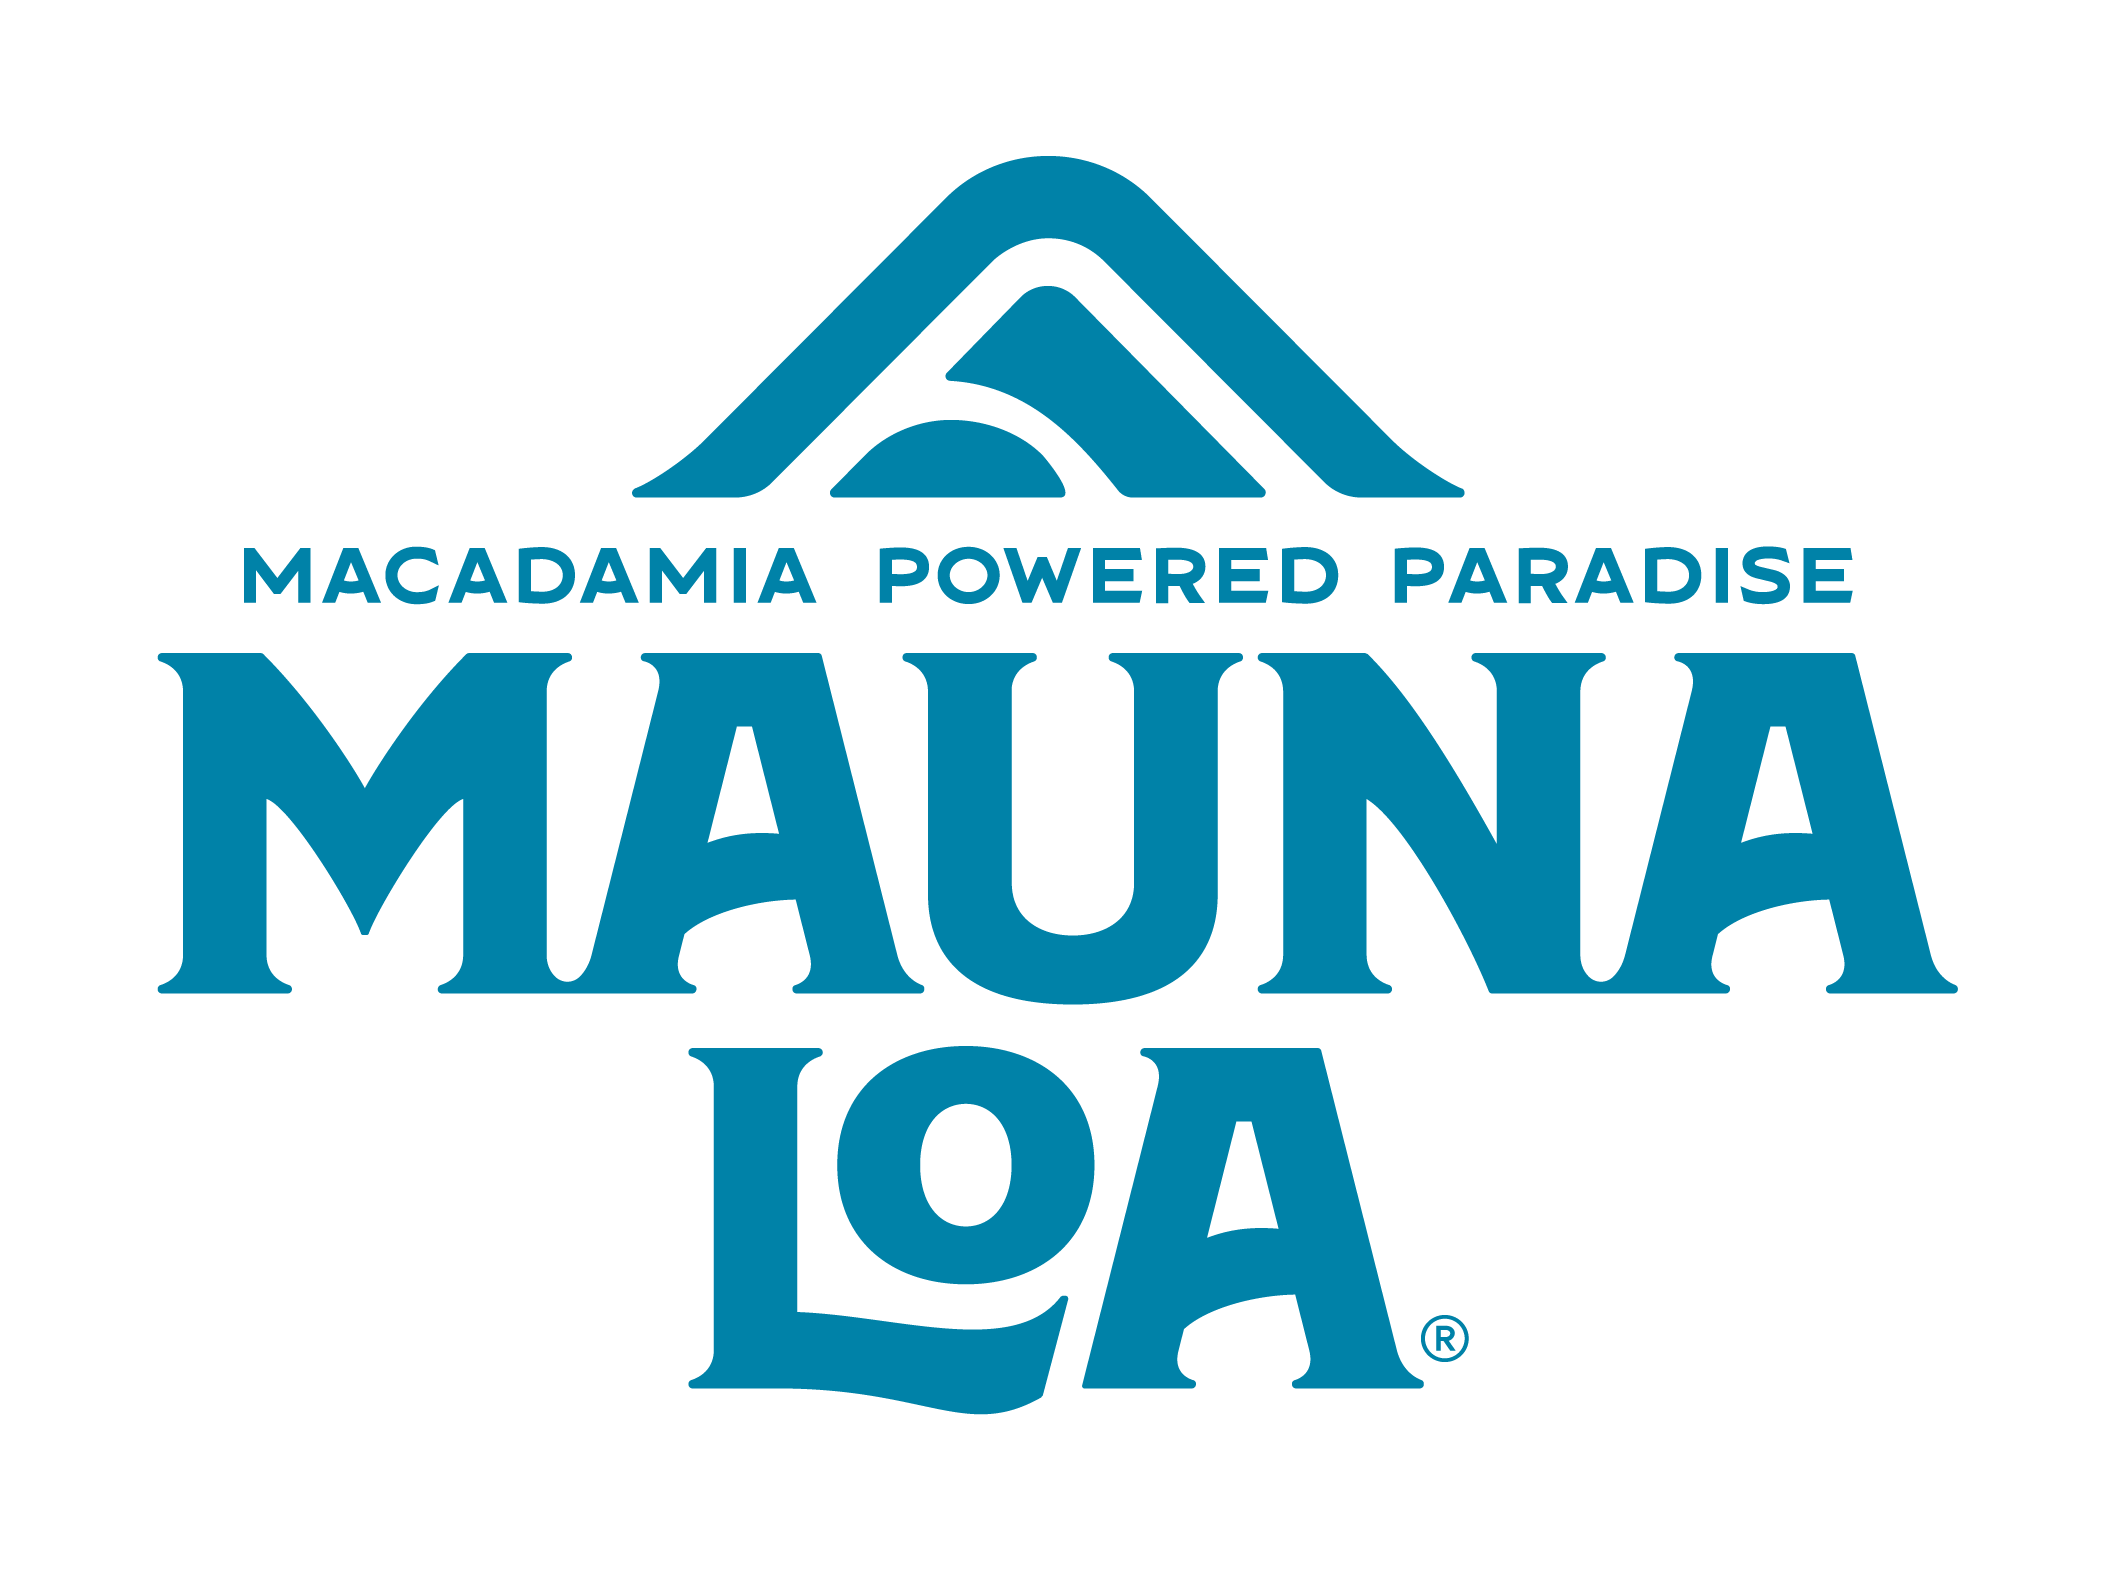 Mauna Loa Help Center home page